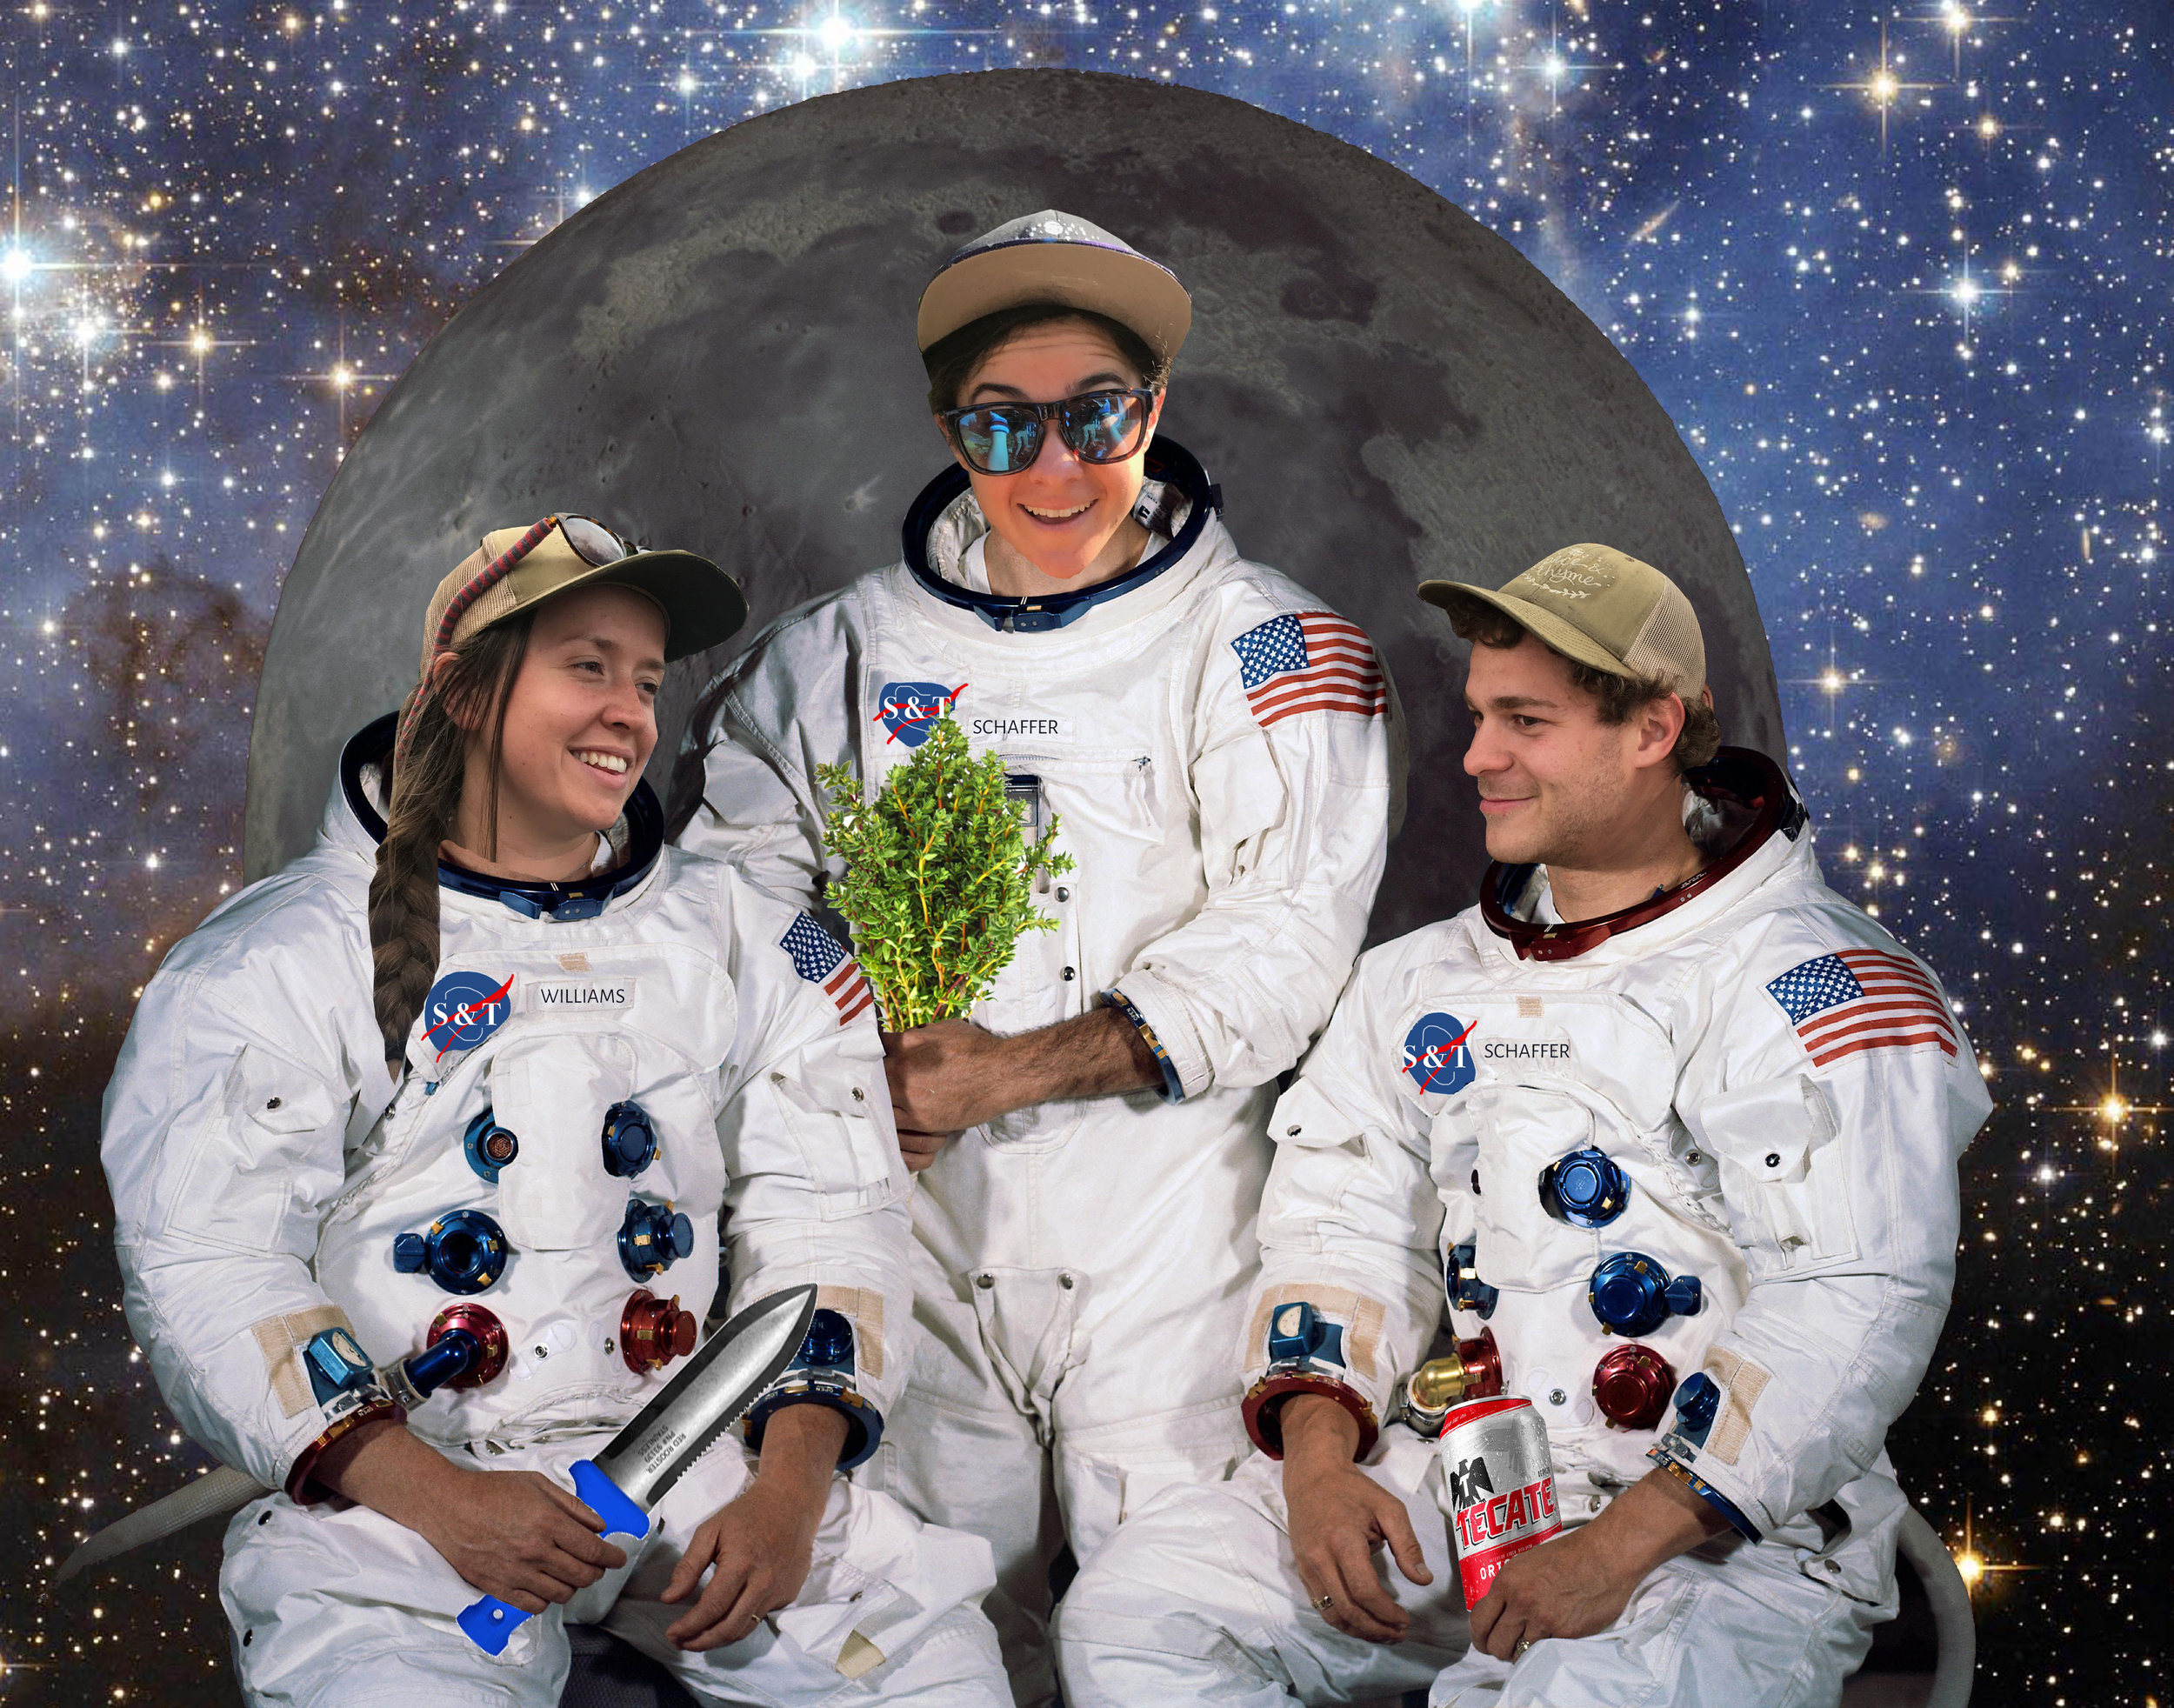 Join our team. - Now that we have retired from space gardening, we're looking for terrestrial help this 2019 gardening season!